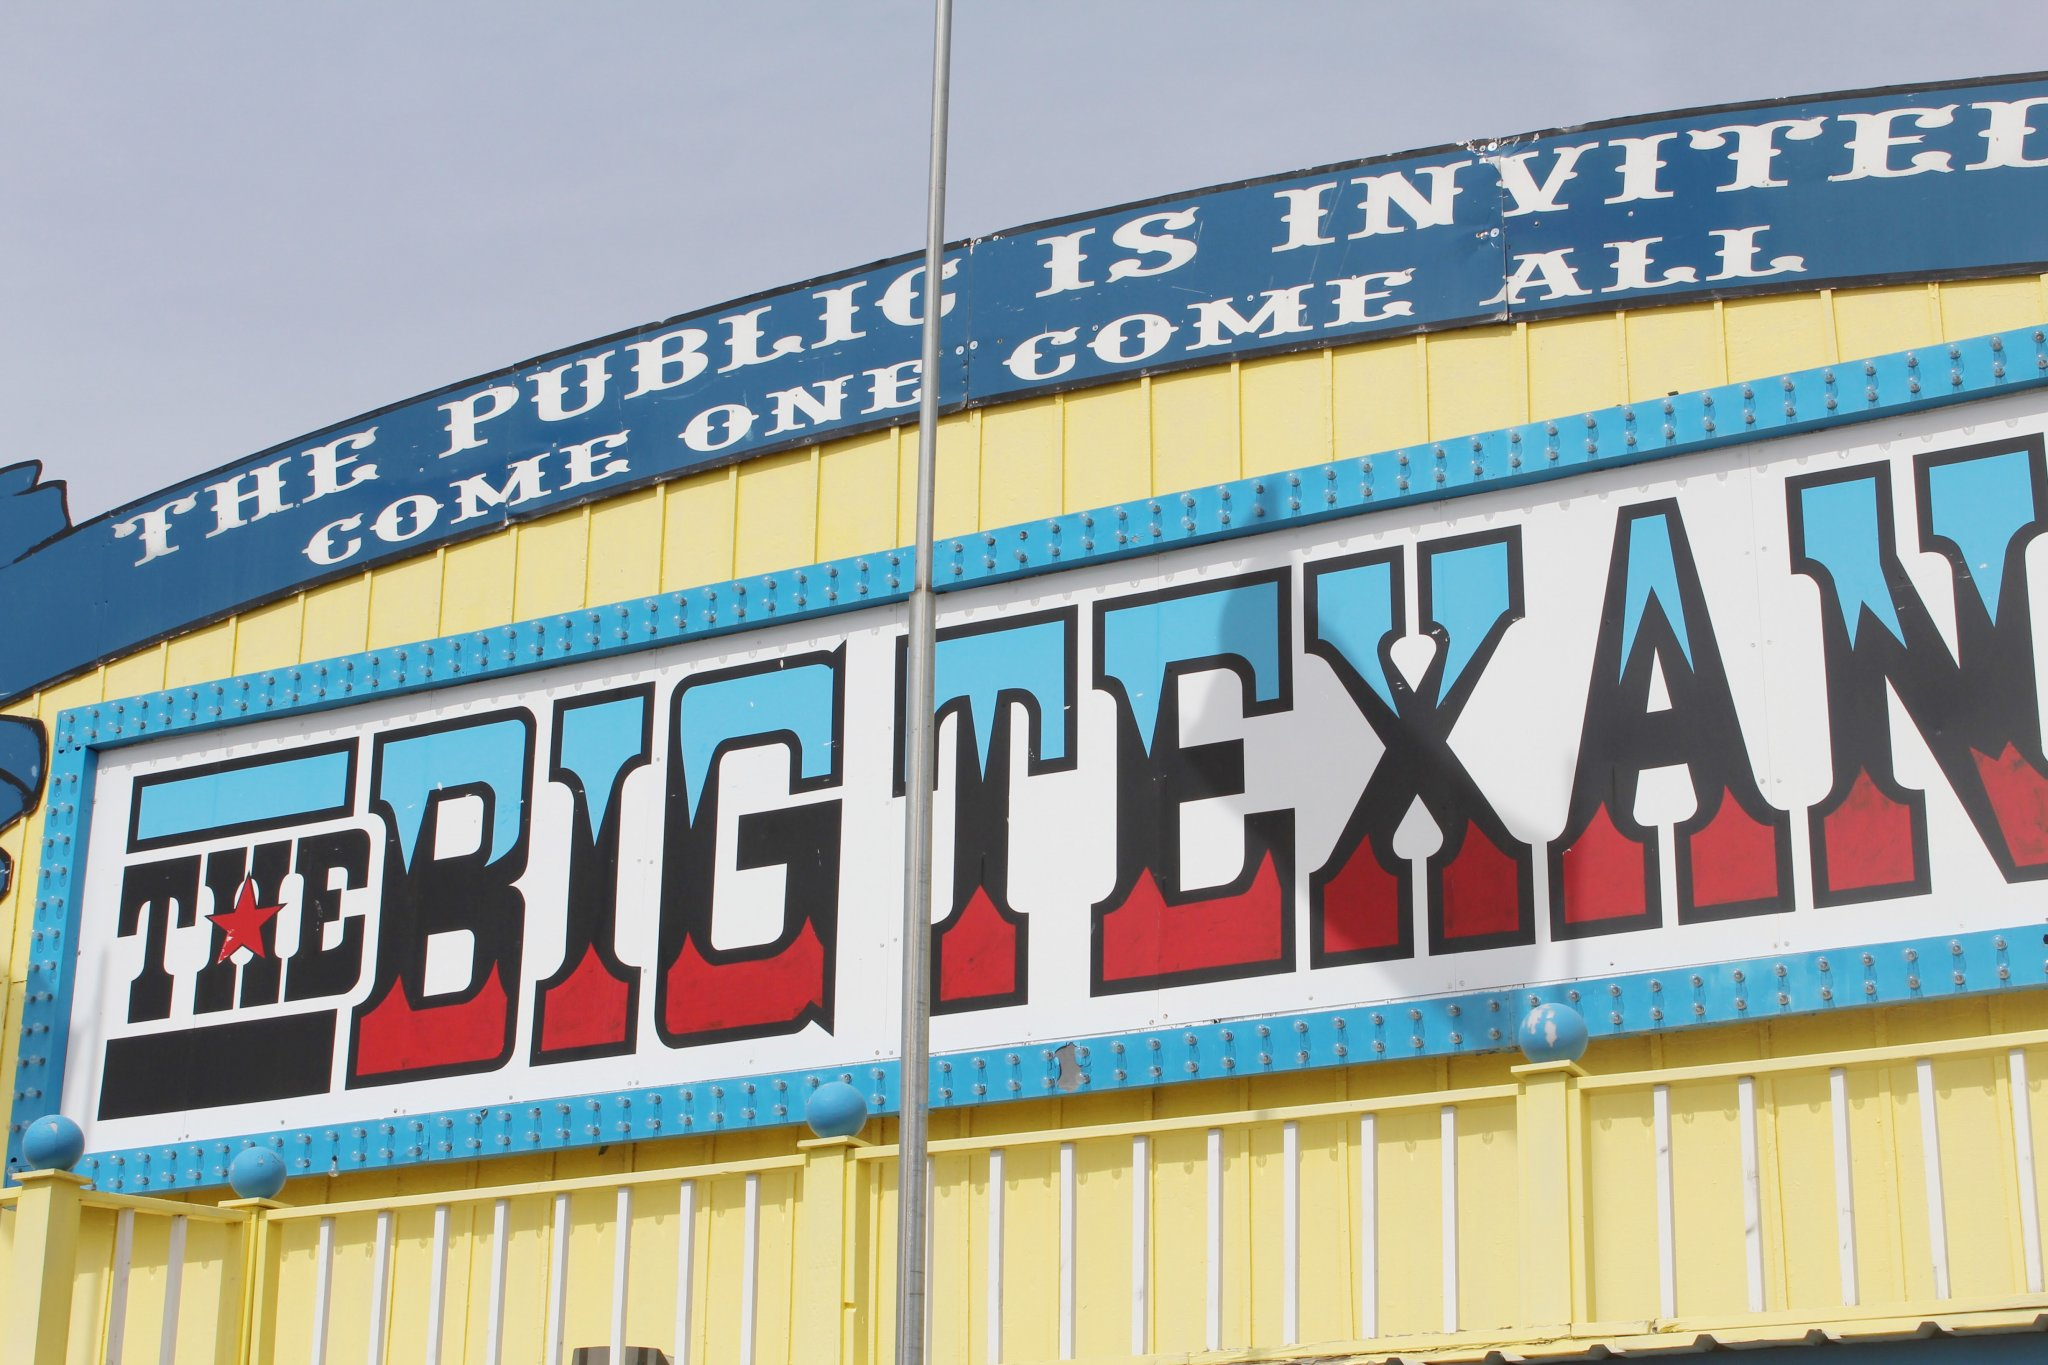 Where to Eat in Amarillo? Big Texan Steak Ranch.